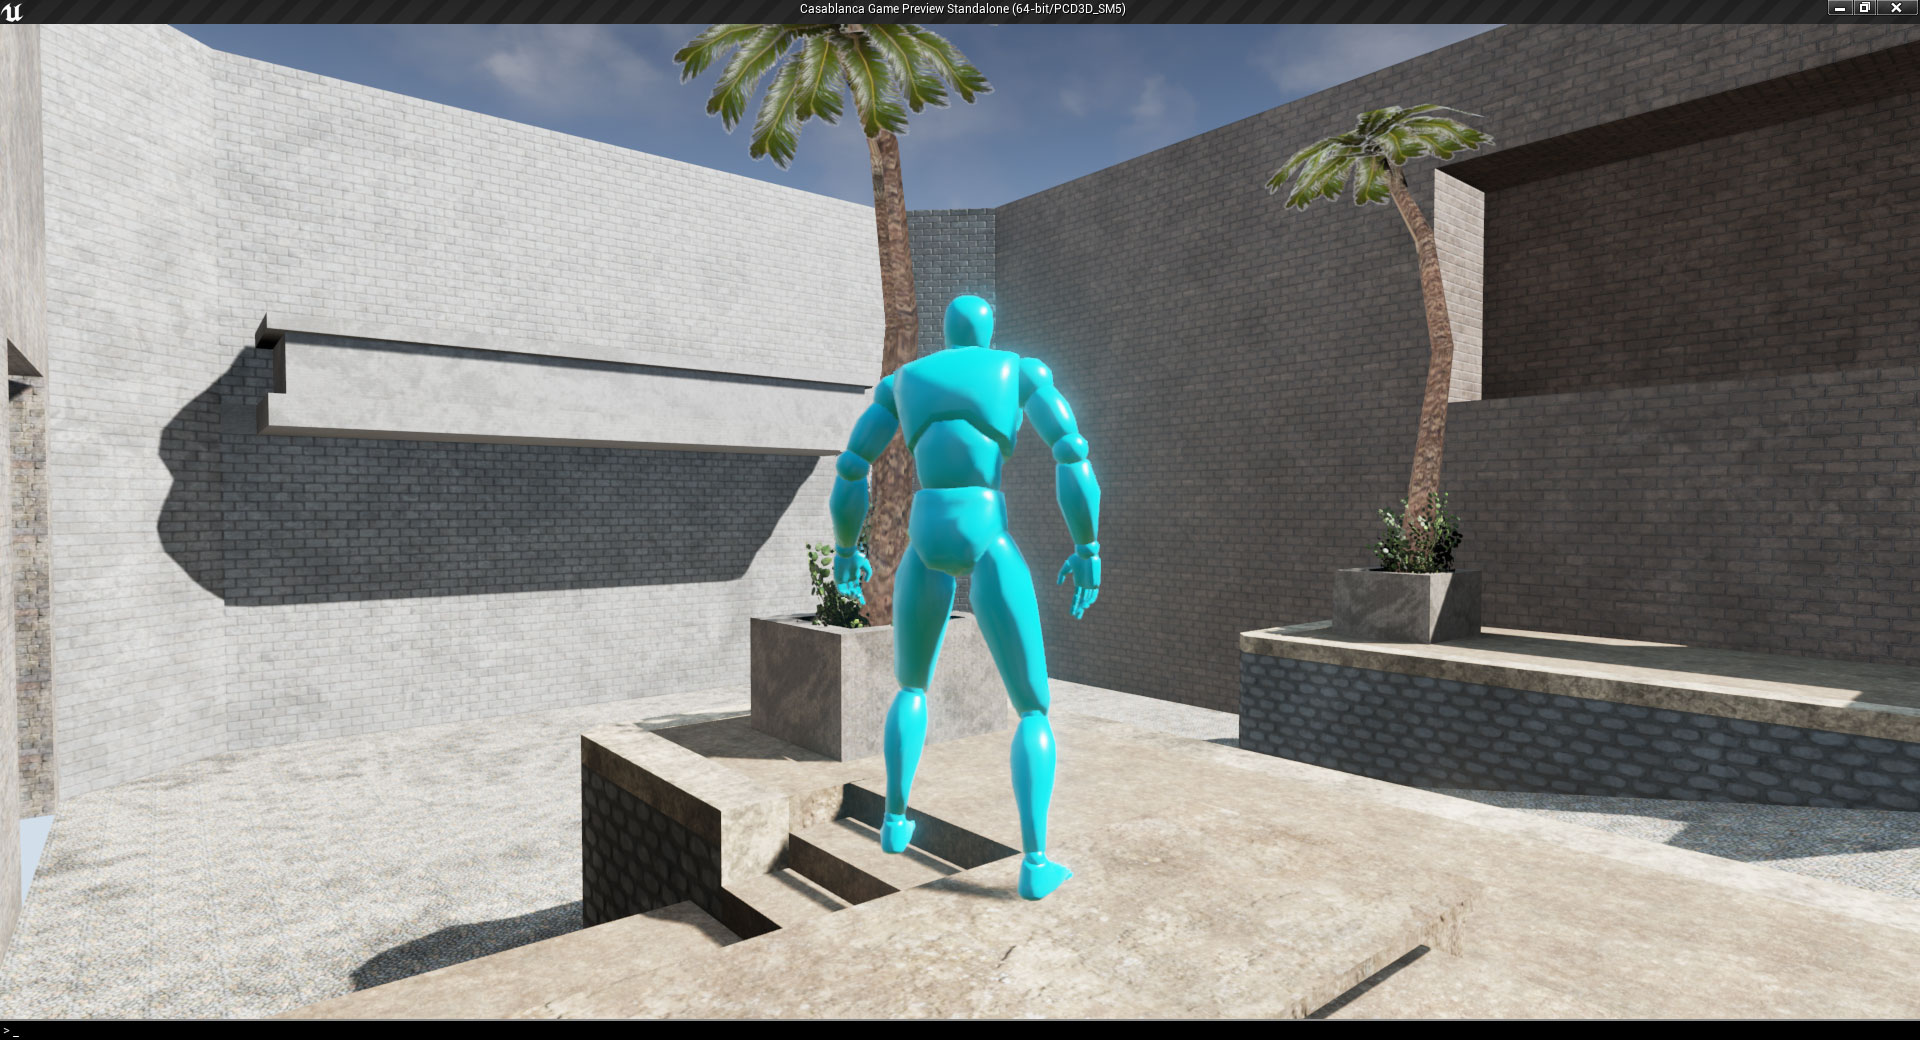 2015-04-03-11_47_04-Casablanca-Game-Preview-Standalone-(64-bit_PCD3D_SM5).jpg